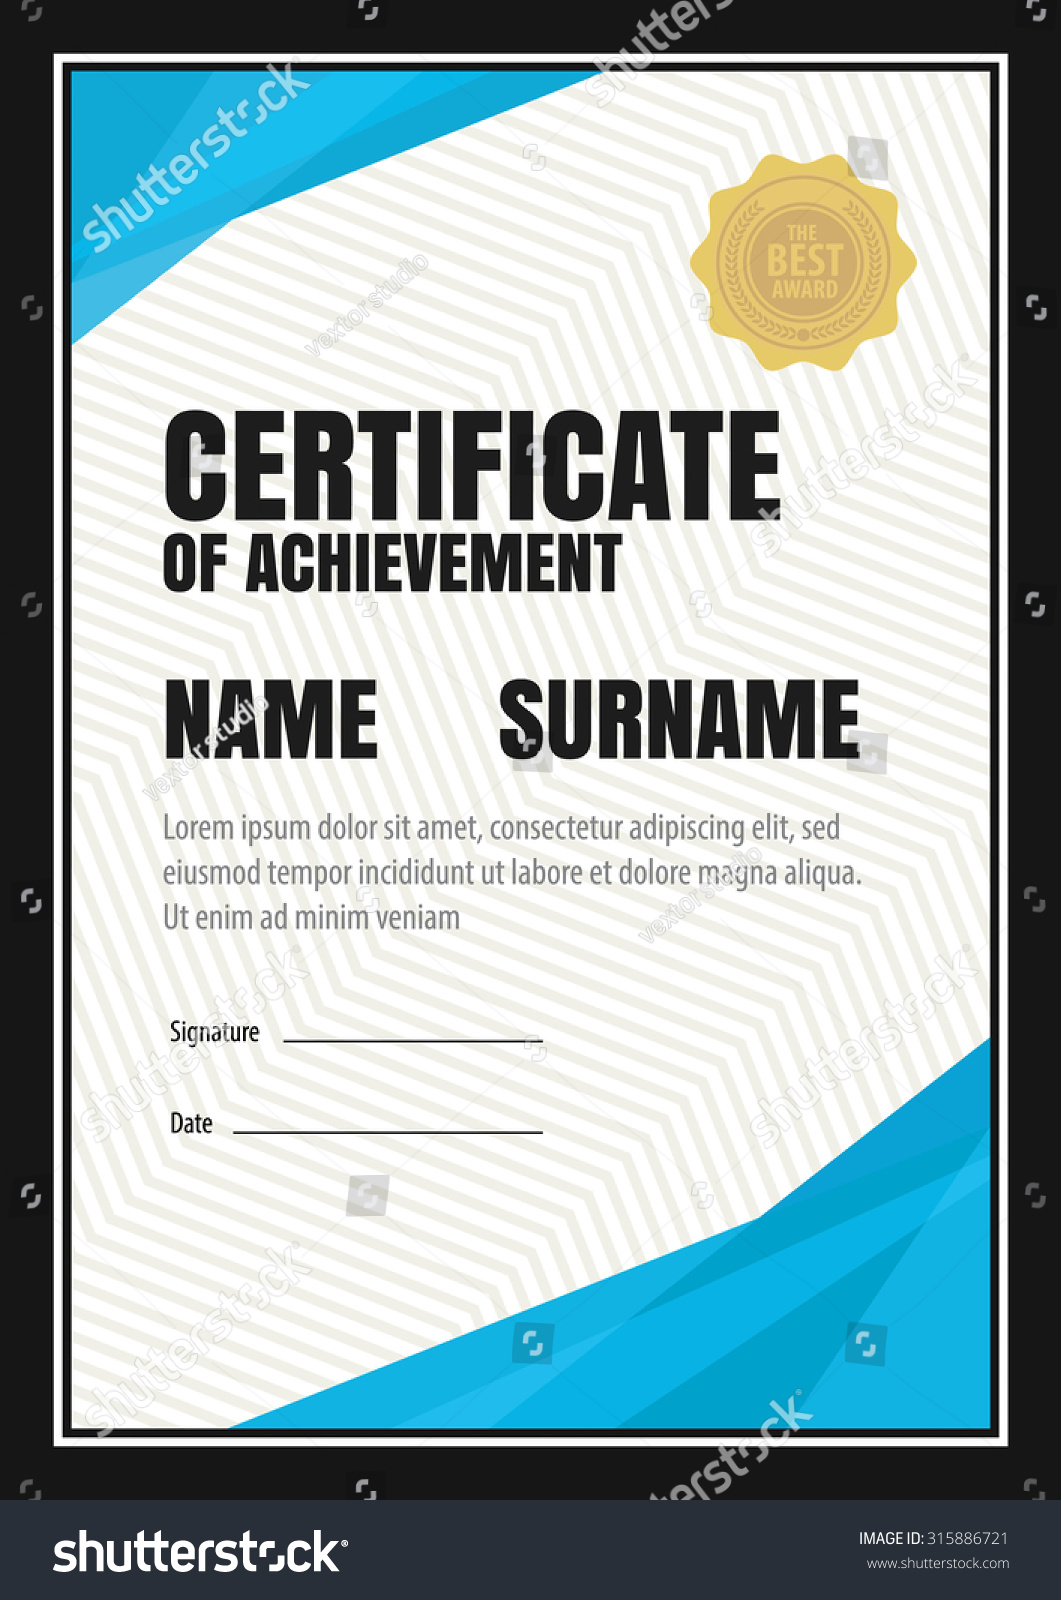 Tennis gift certificate template gallery templates example free tennis award certificate template image collections certificate tennis award certificate template choice image certificate tennis certificate yadclub Choice Image